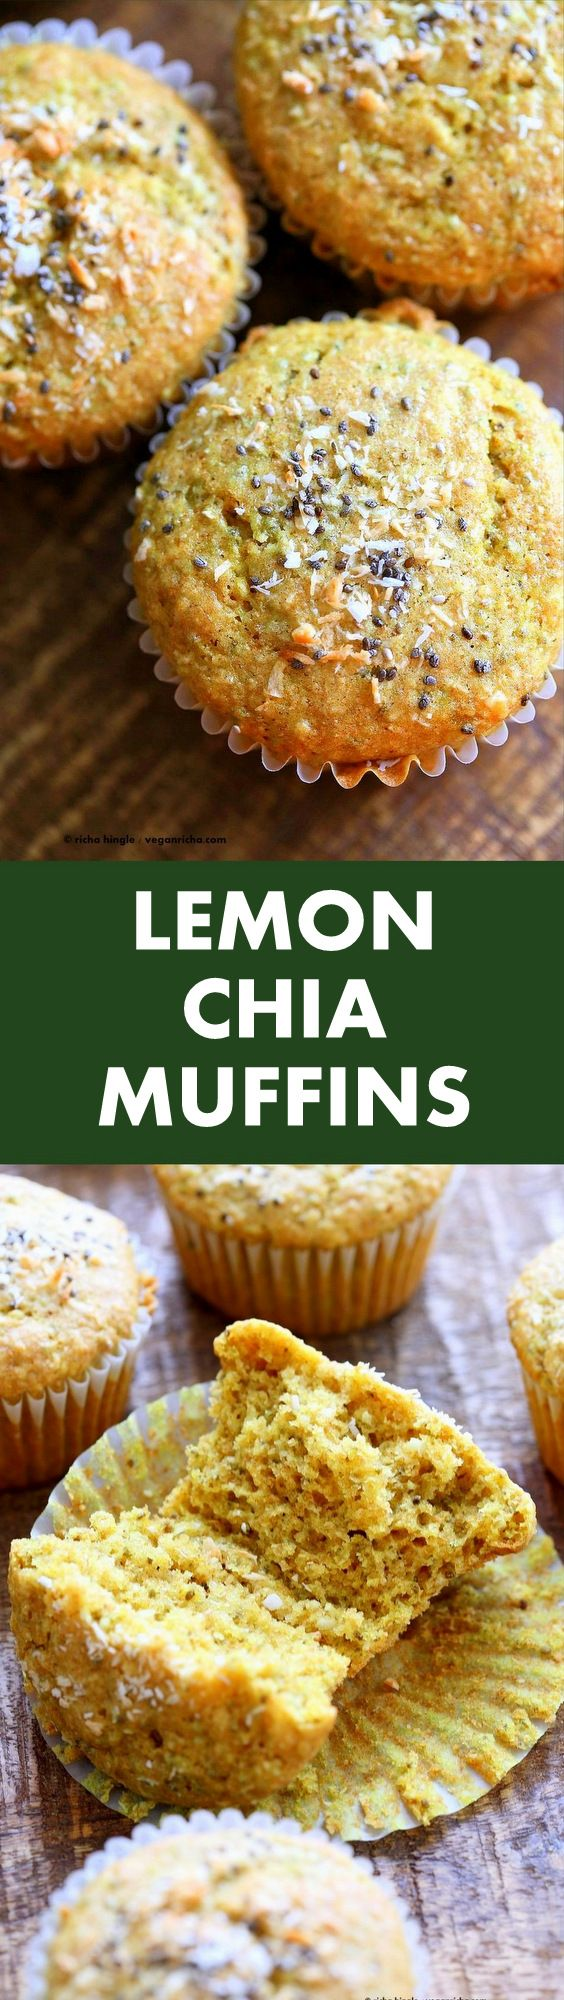 Lemon Coconut Chia Muffins. Zesty Muffins with Lemon, chia seeds, coconut and Turmeric. 1 bowl 30 minute muffins. Vegan Soy-free Nut-free Oil-free Recipe |i think I would use quinoa or coconut flour instead